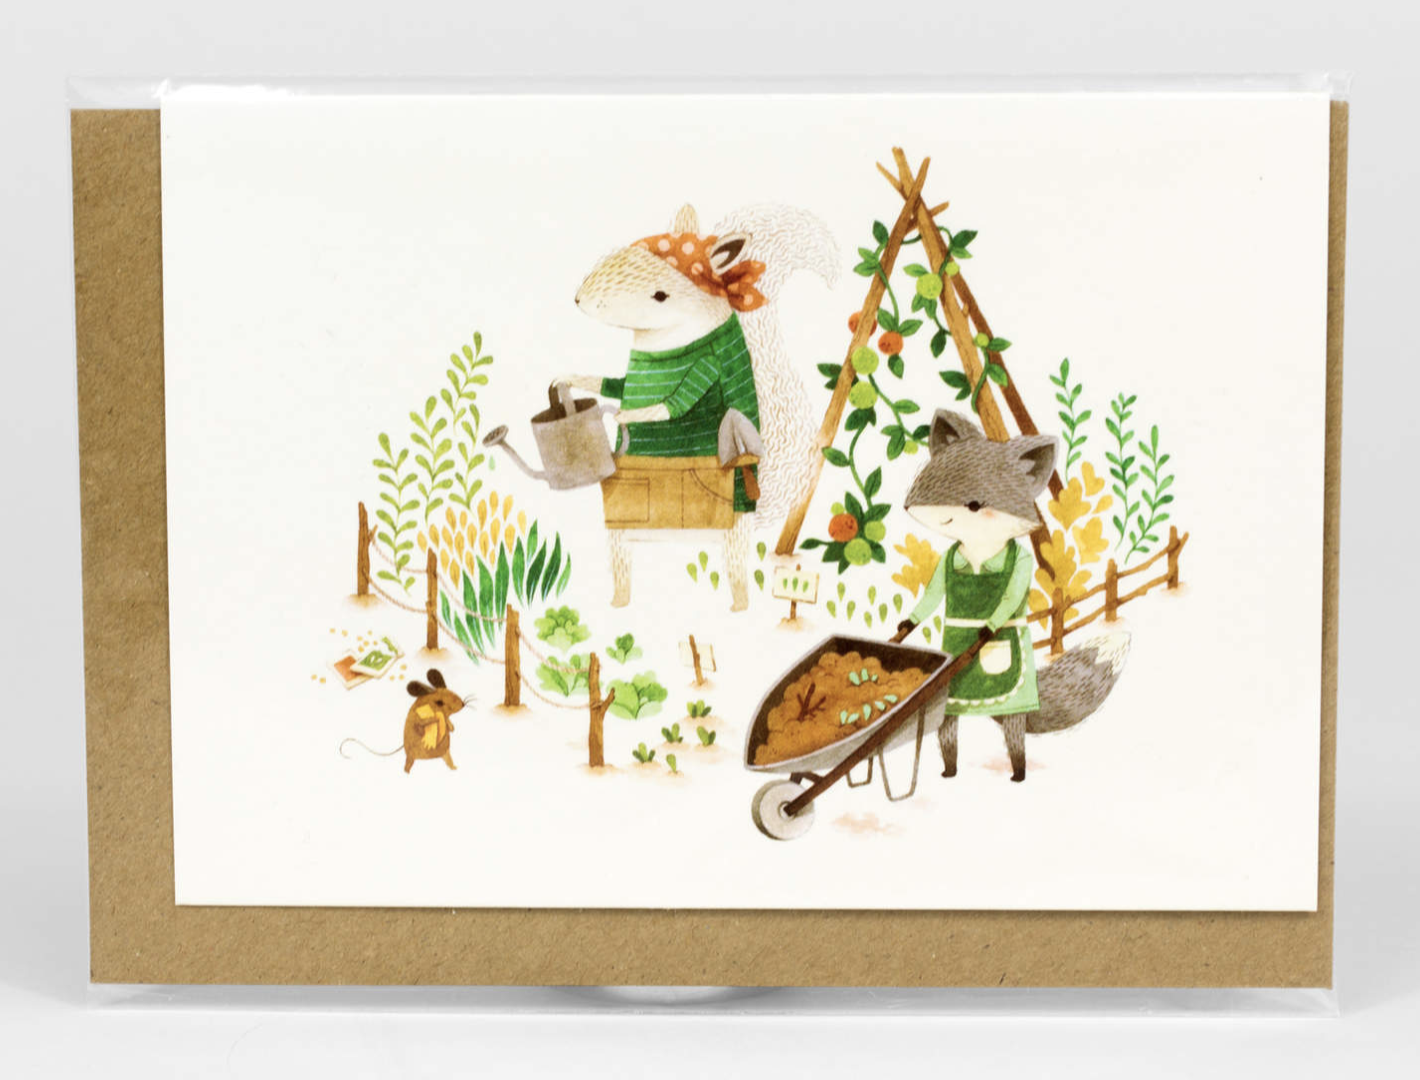 """Barefoot Critters """"Gardening Critters,"""" Blank Greeting Card"""